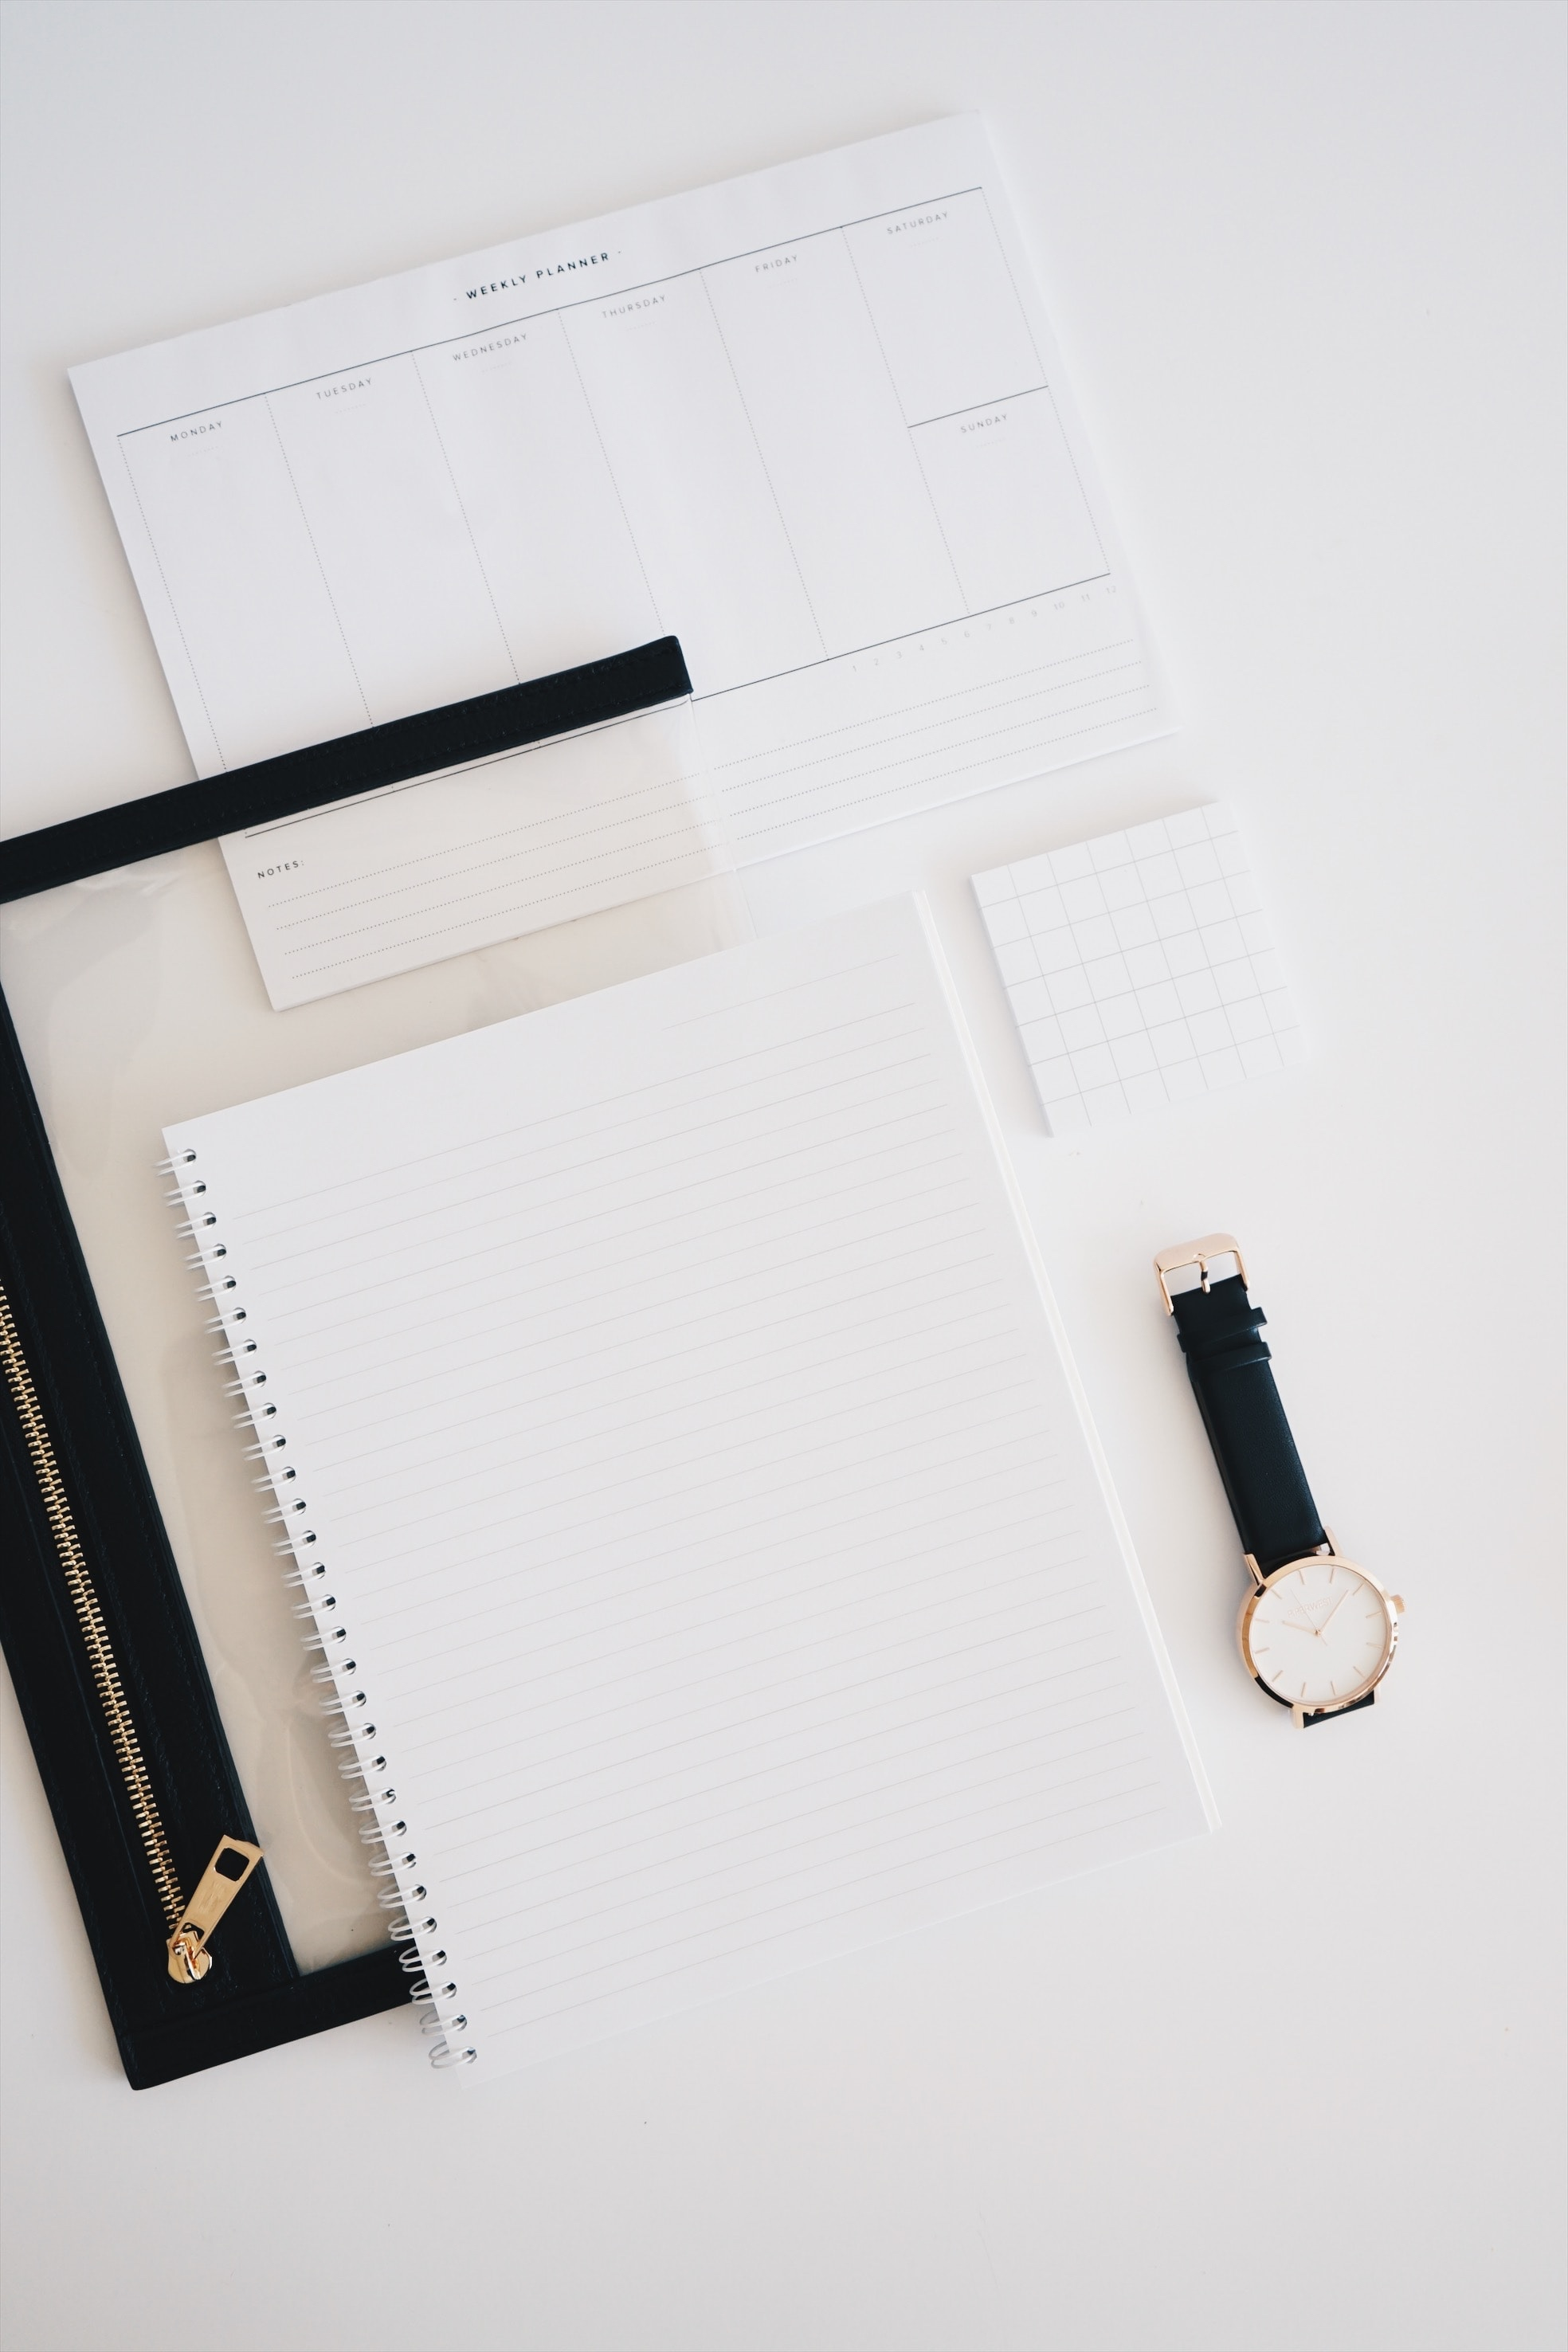 A lined A4 notebook, with a black wrist watch and a weekly planner.